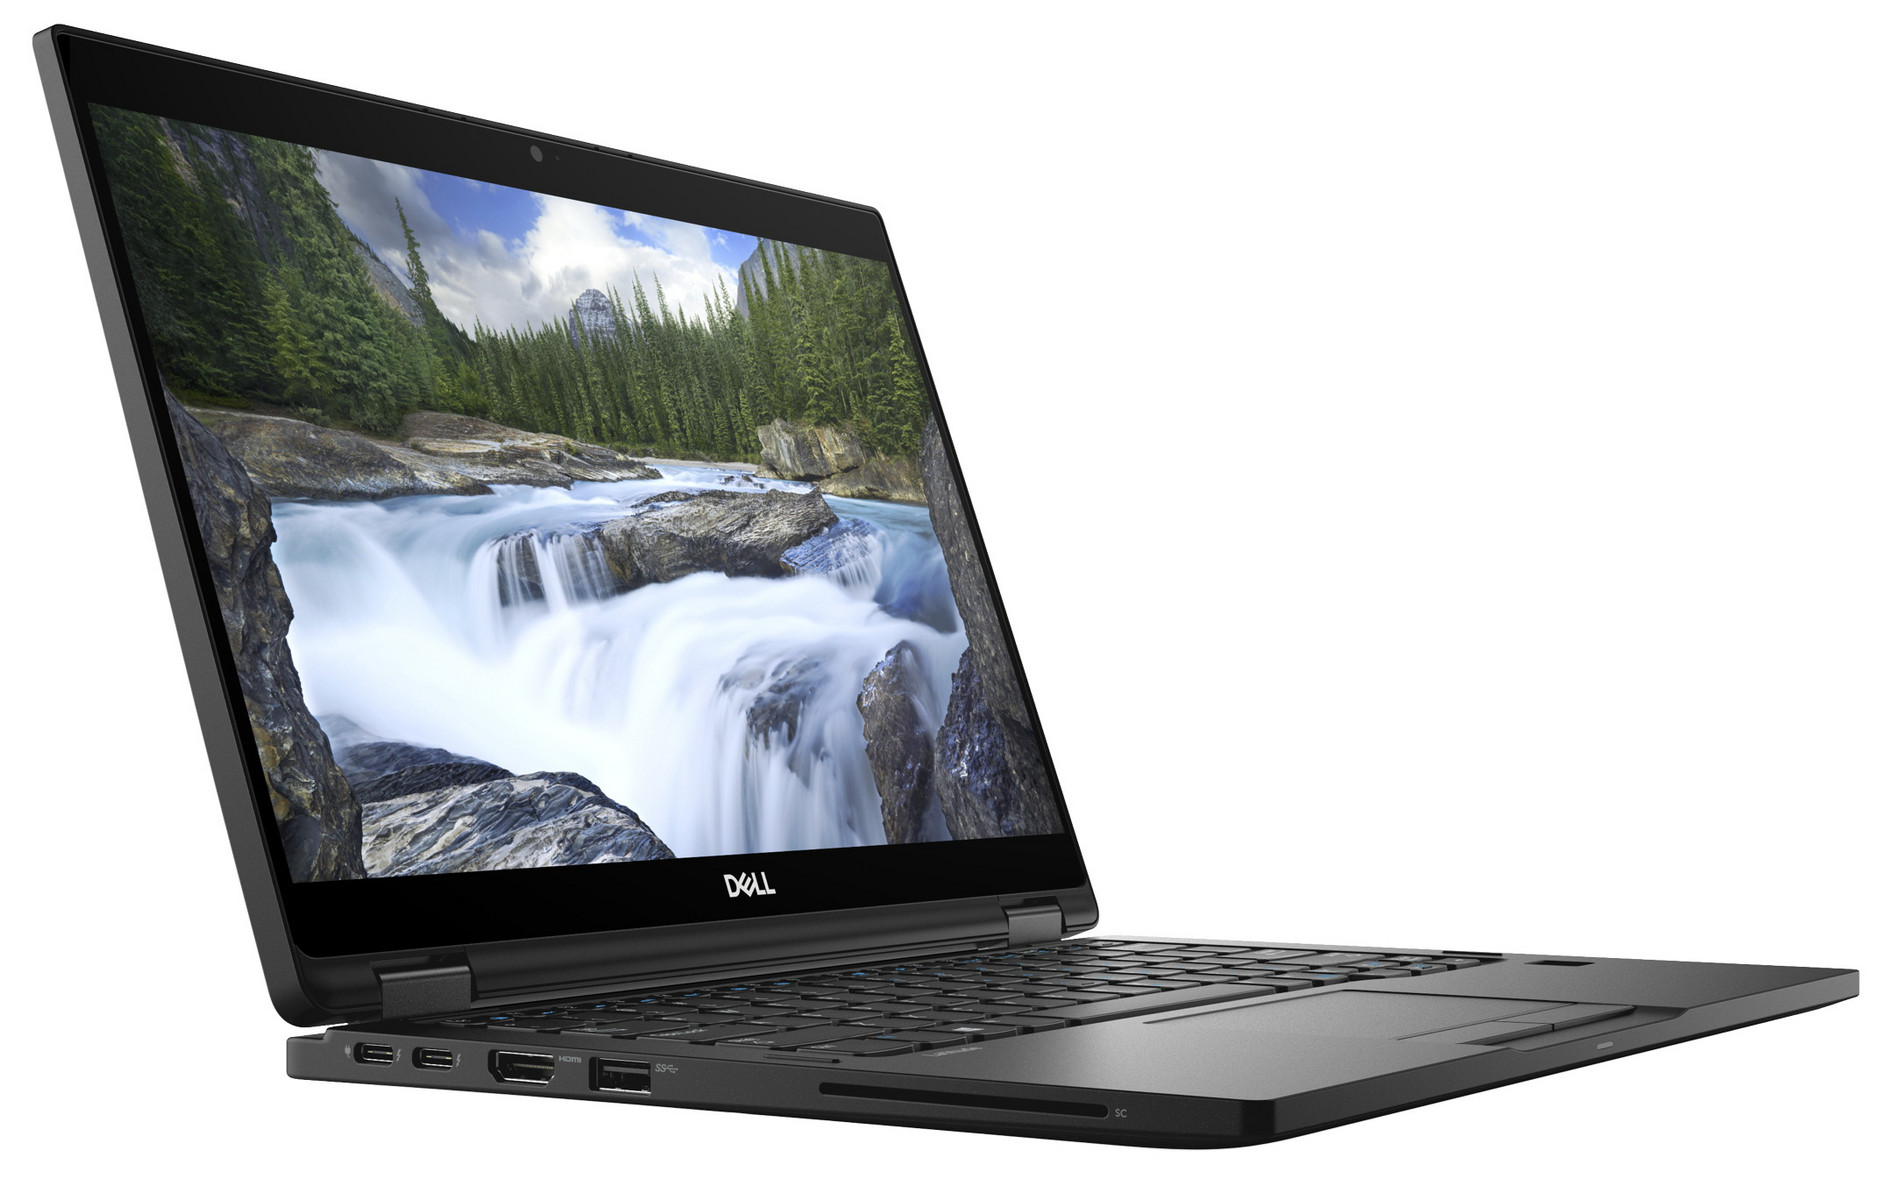 Ultrabook Dell Latitude 7389 13.3 Full HD Touch Intel Core i7-7600U RAM 16GB SSD 1TB Windows 10 Pro